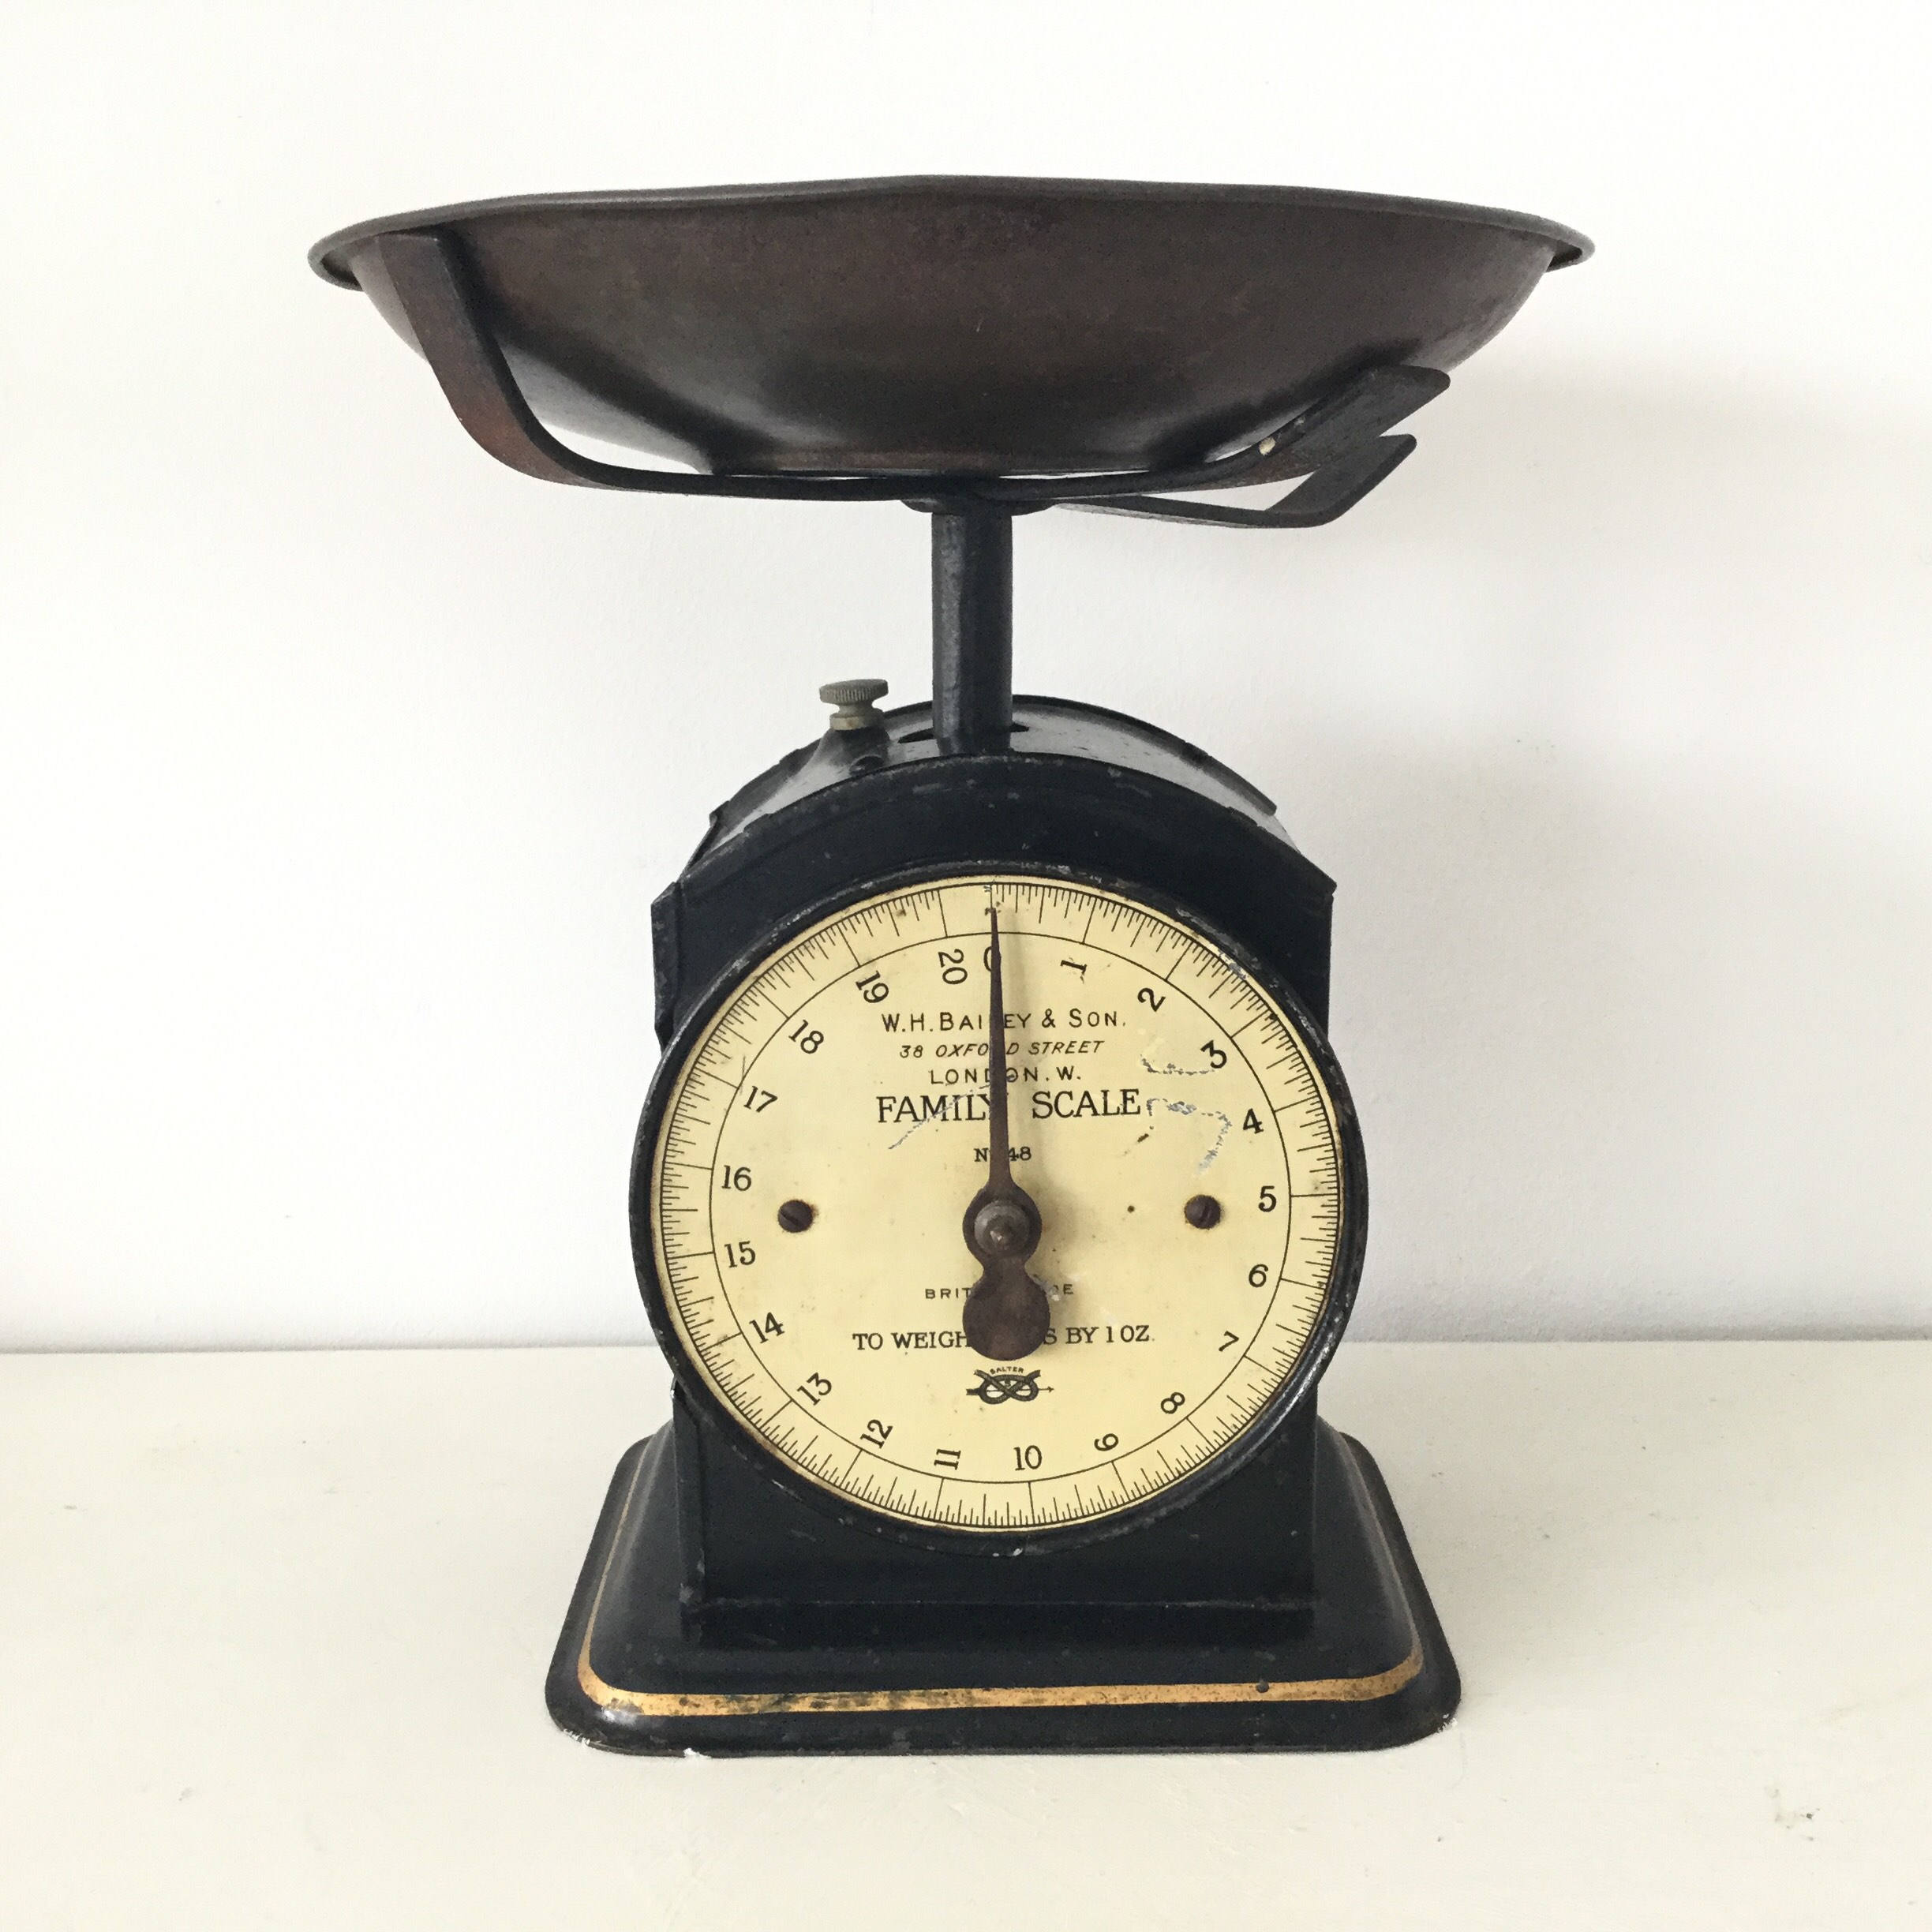 Luggage Scale Big W Weighing Scales Big W